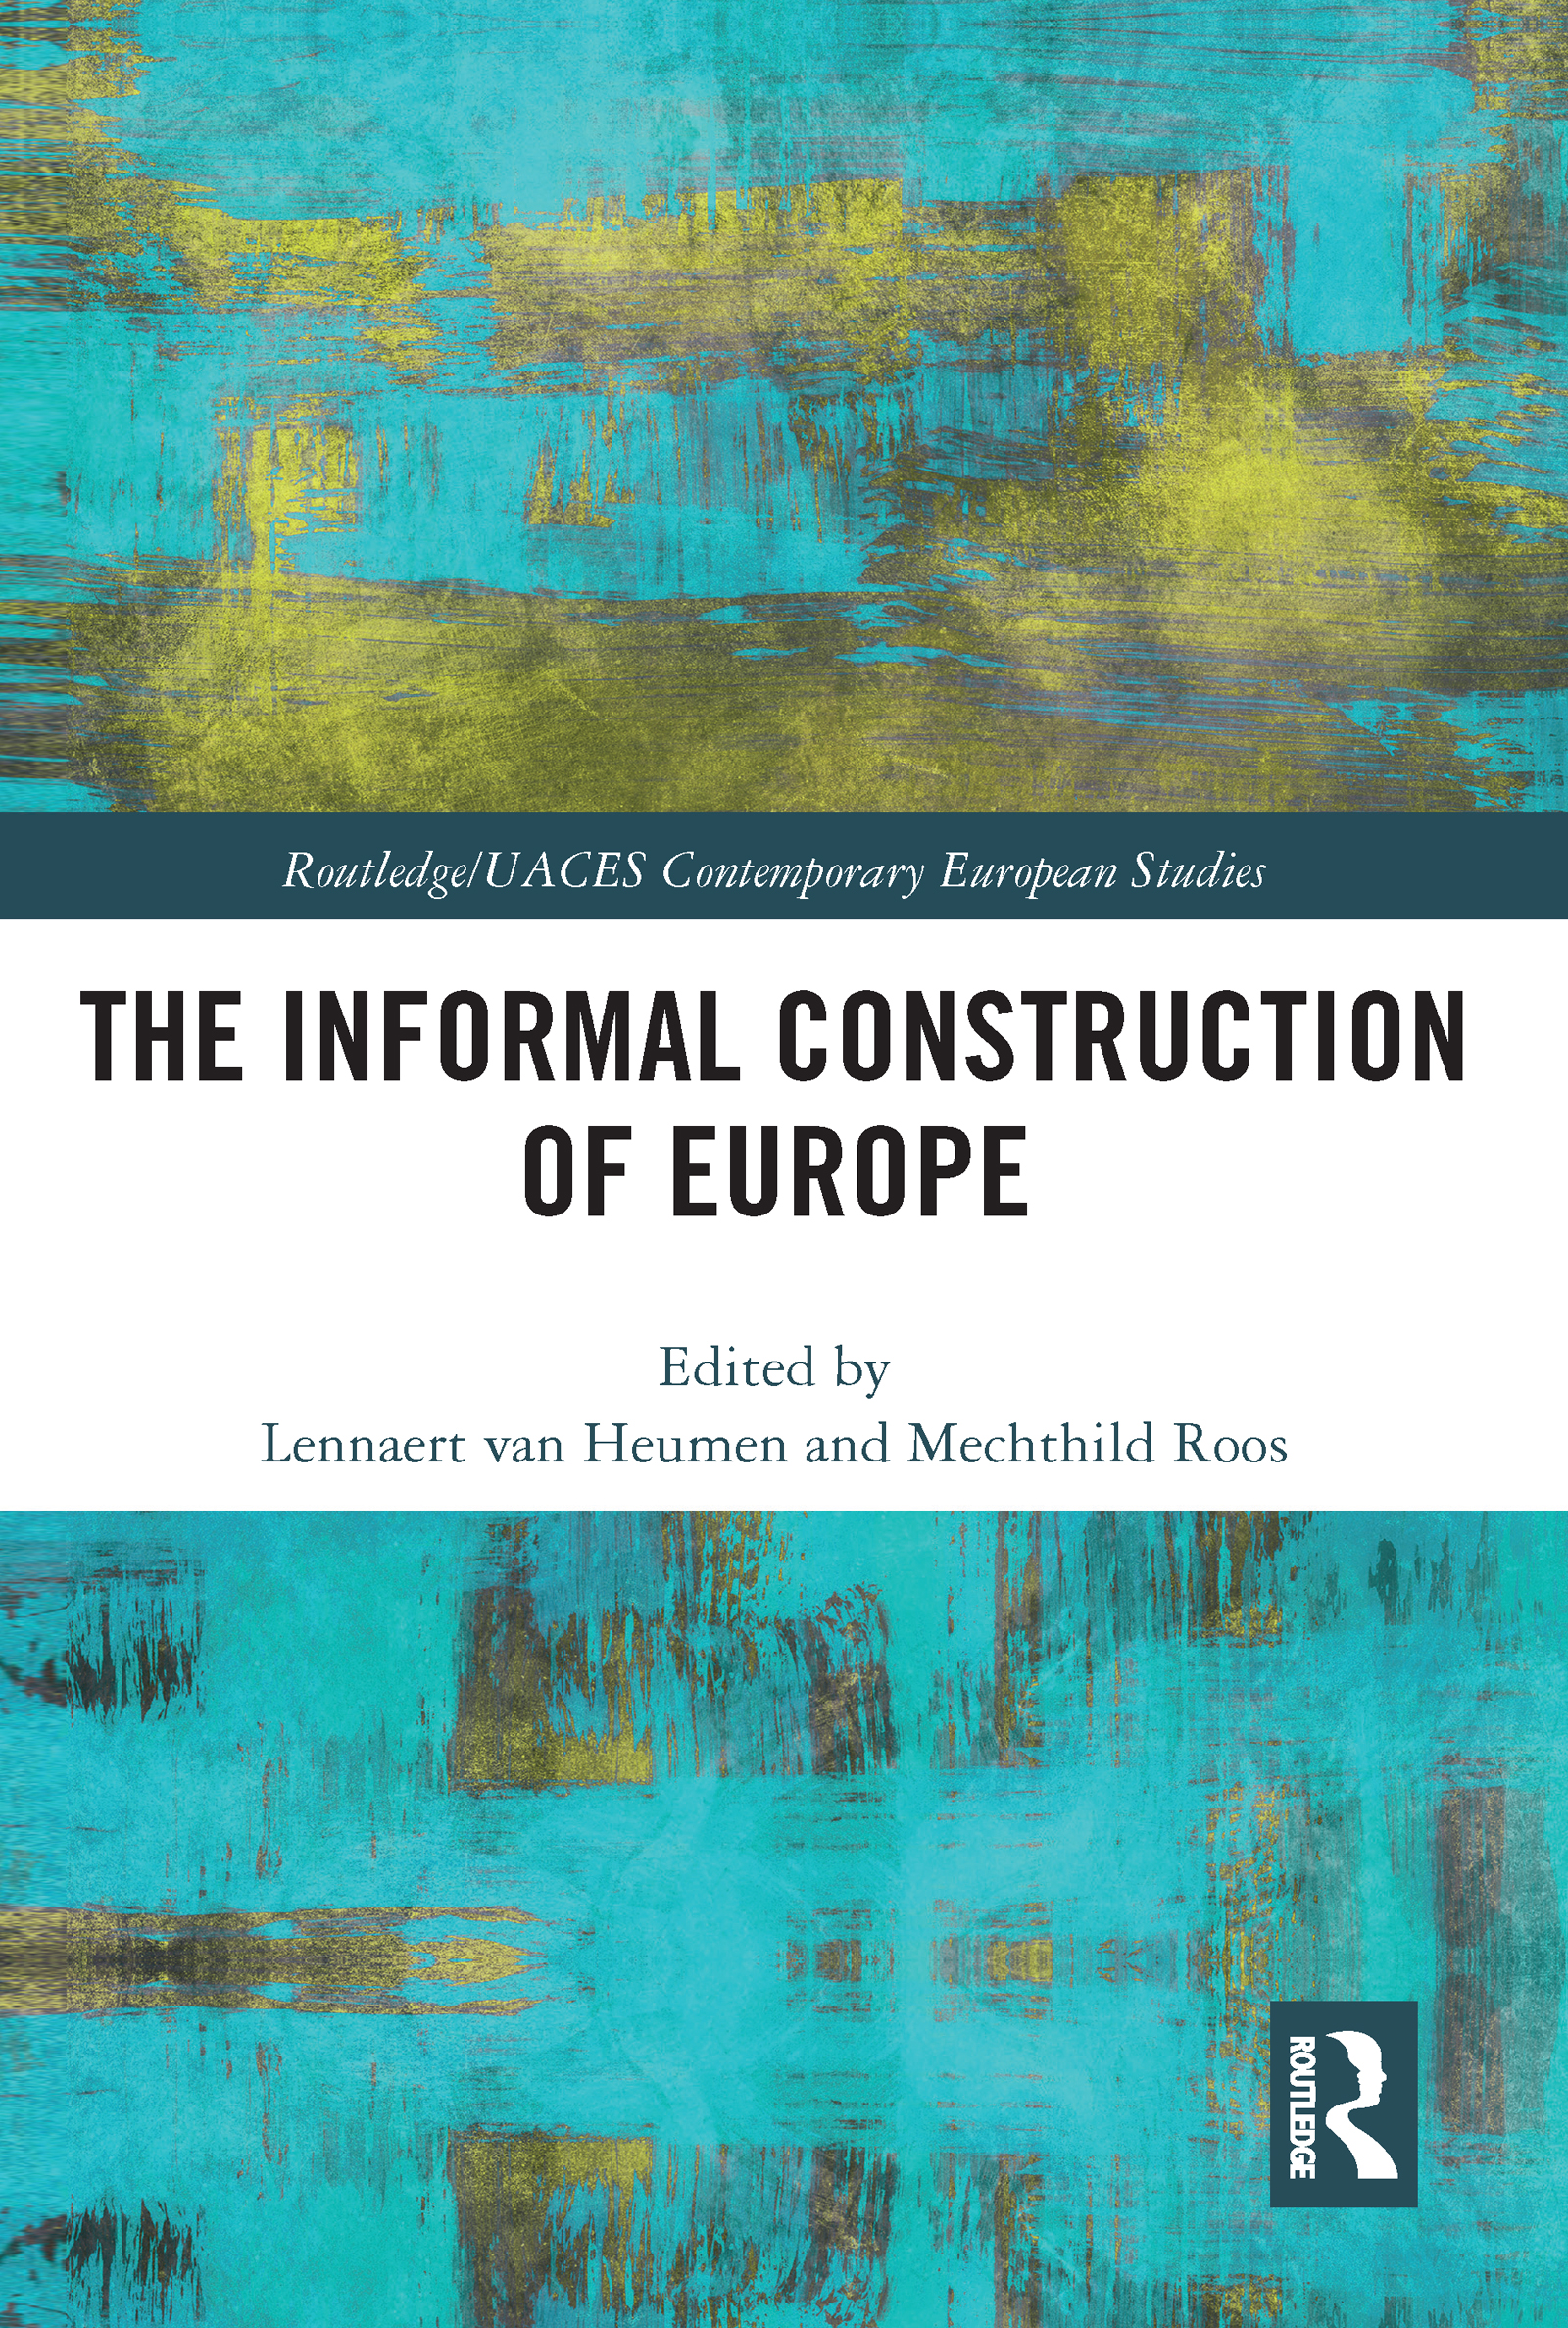 The Informal Construction of Europe